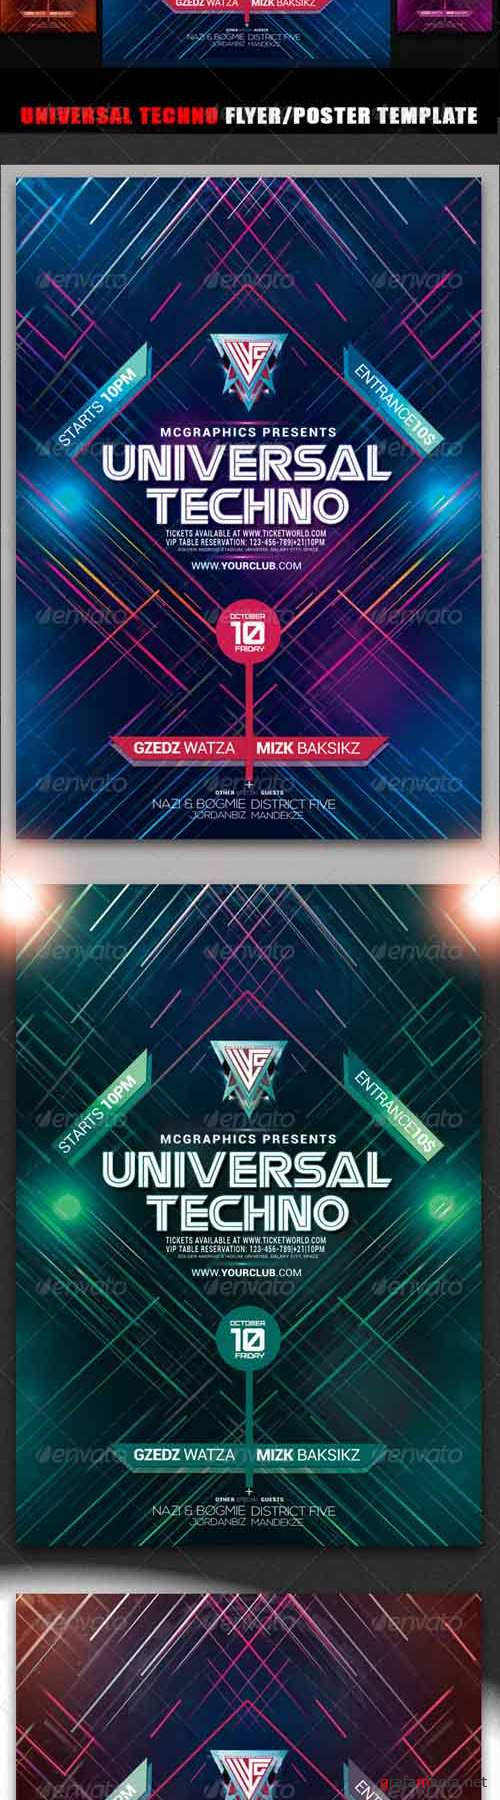 Flyer/Poster Template - Universal Techno